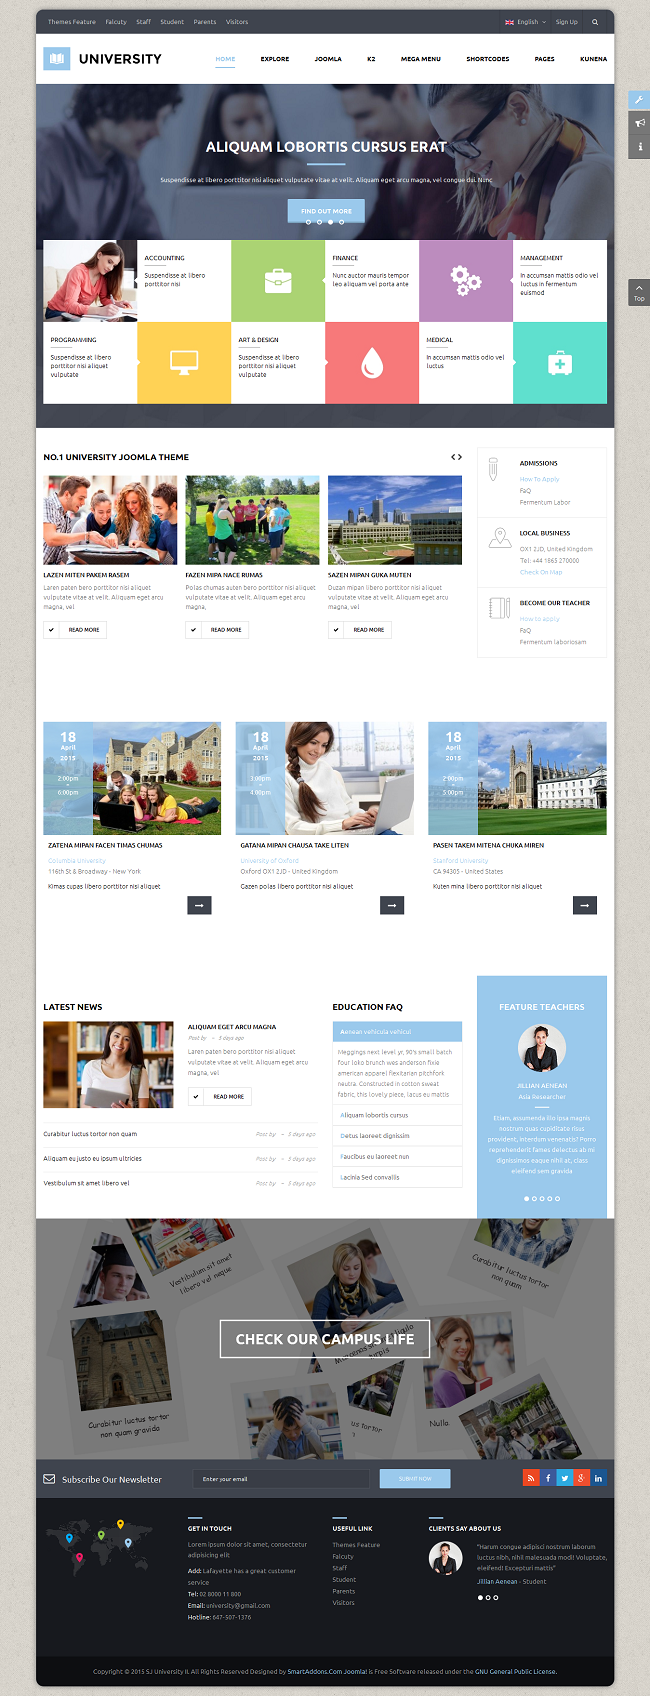 SJ University II - Responsive Joomla Educational Template - 05_index-rounded.png